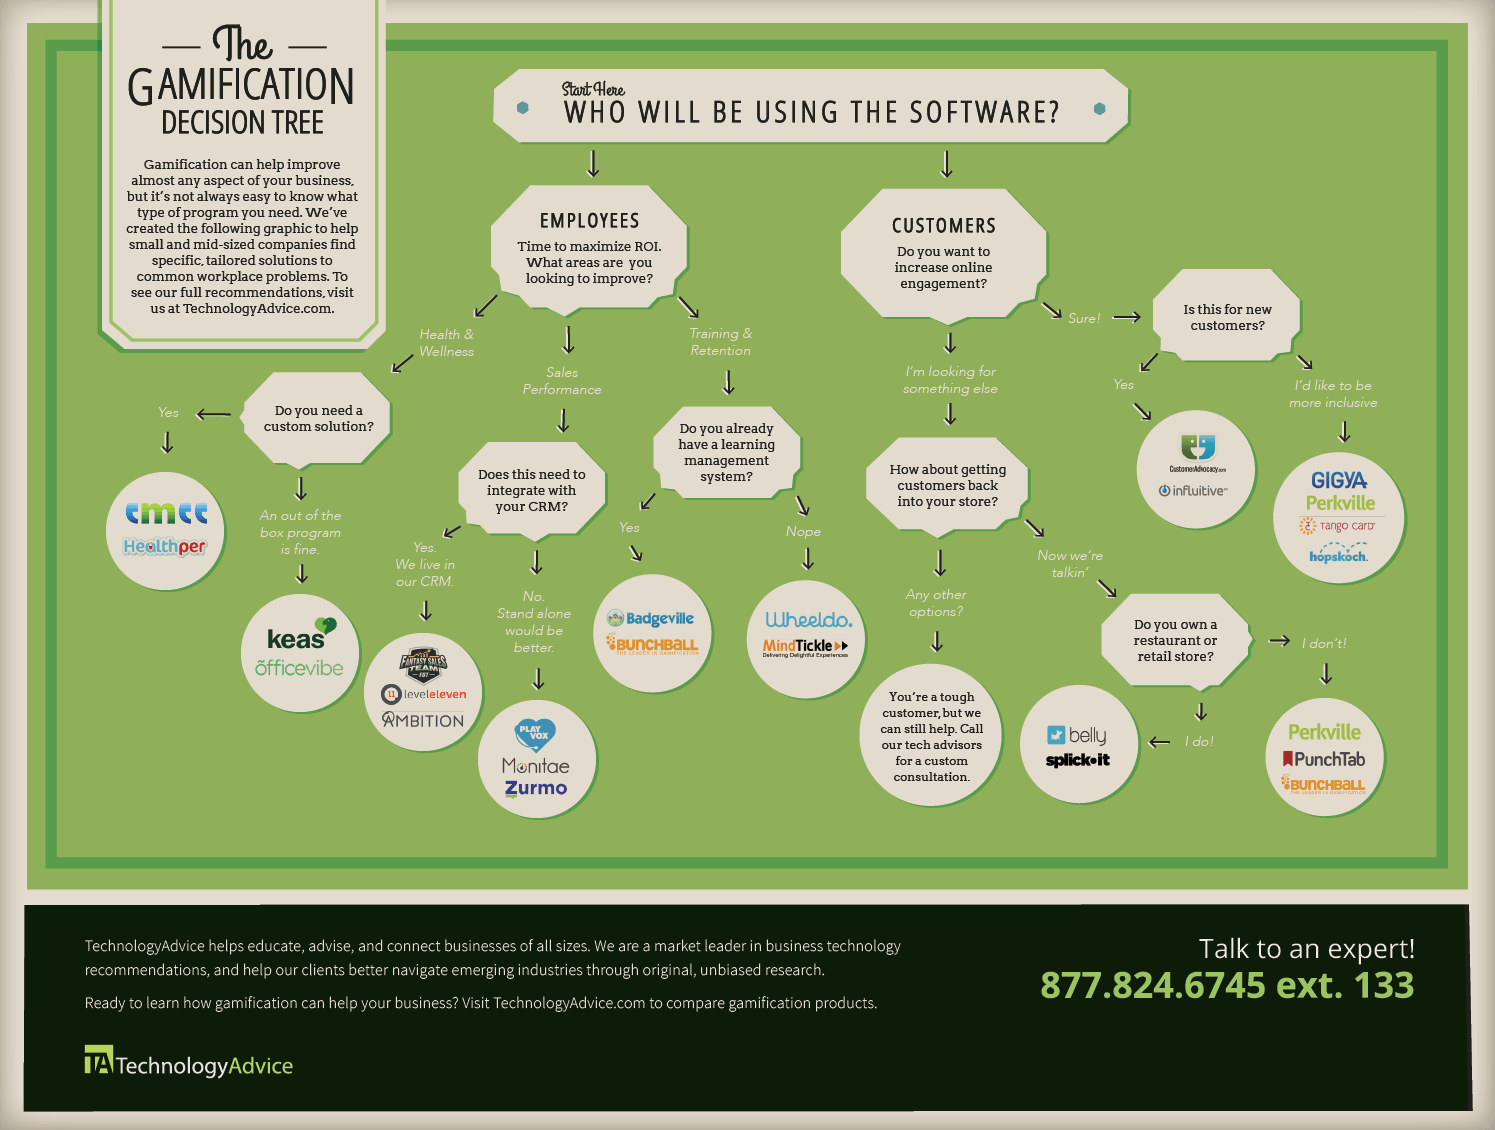 Gamification Software Decision Tree Infographic